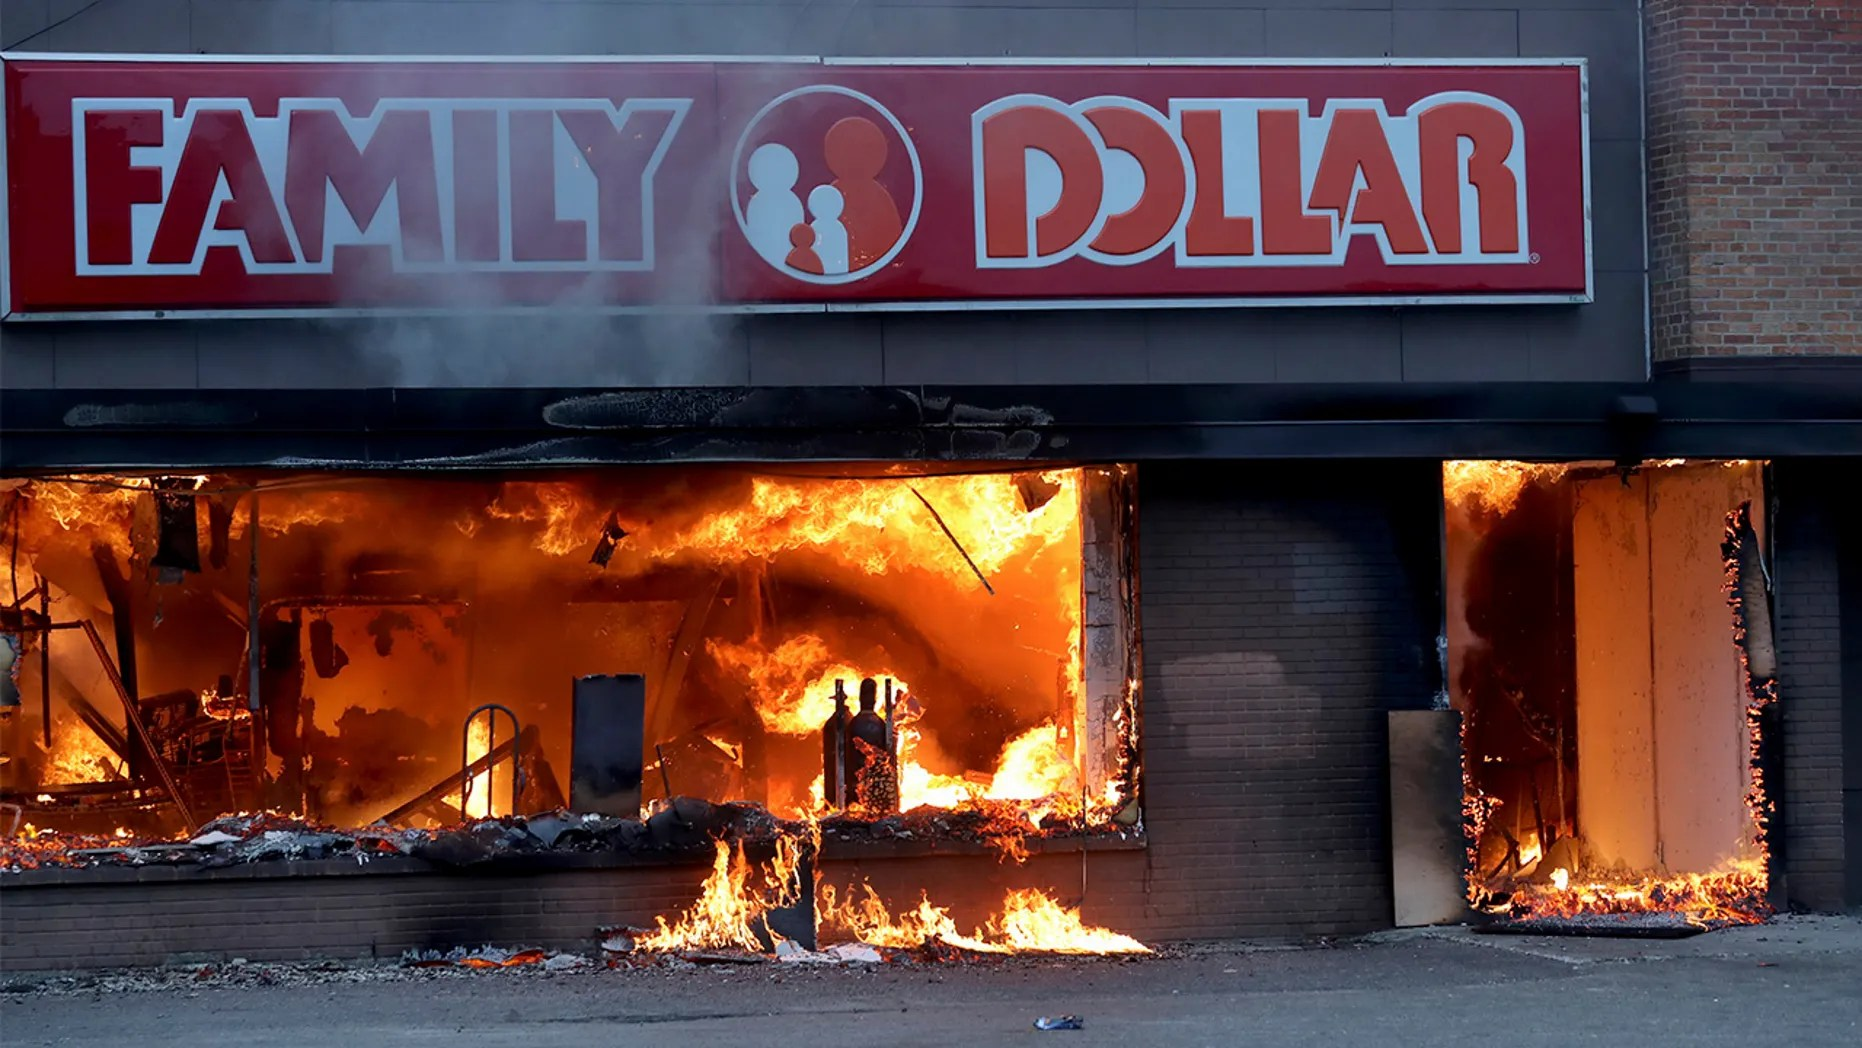 Fire burns inside The Family Dollar Store after a night of unrest and protests in the death of George Floyd early Friday, May 29, 2020 in Minneapolis. Floyd died after being restrained by Minneapolis police officers on Memorial Day. (David Joles/Star Tribune via AP)